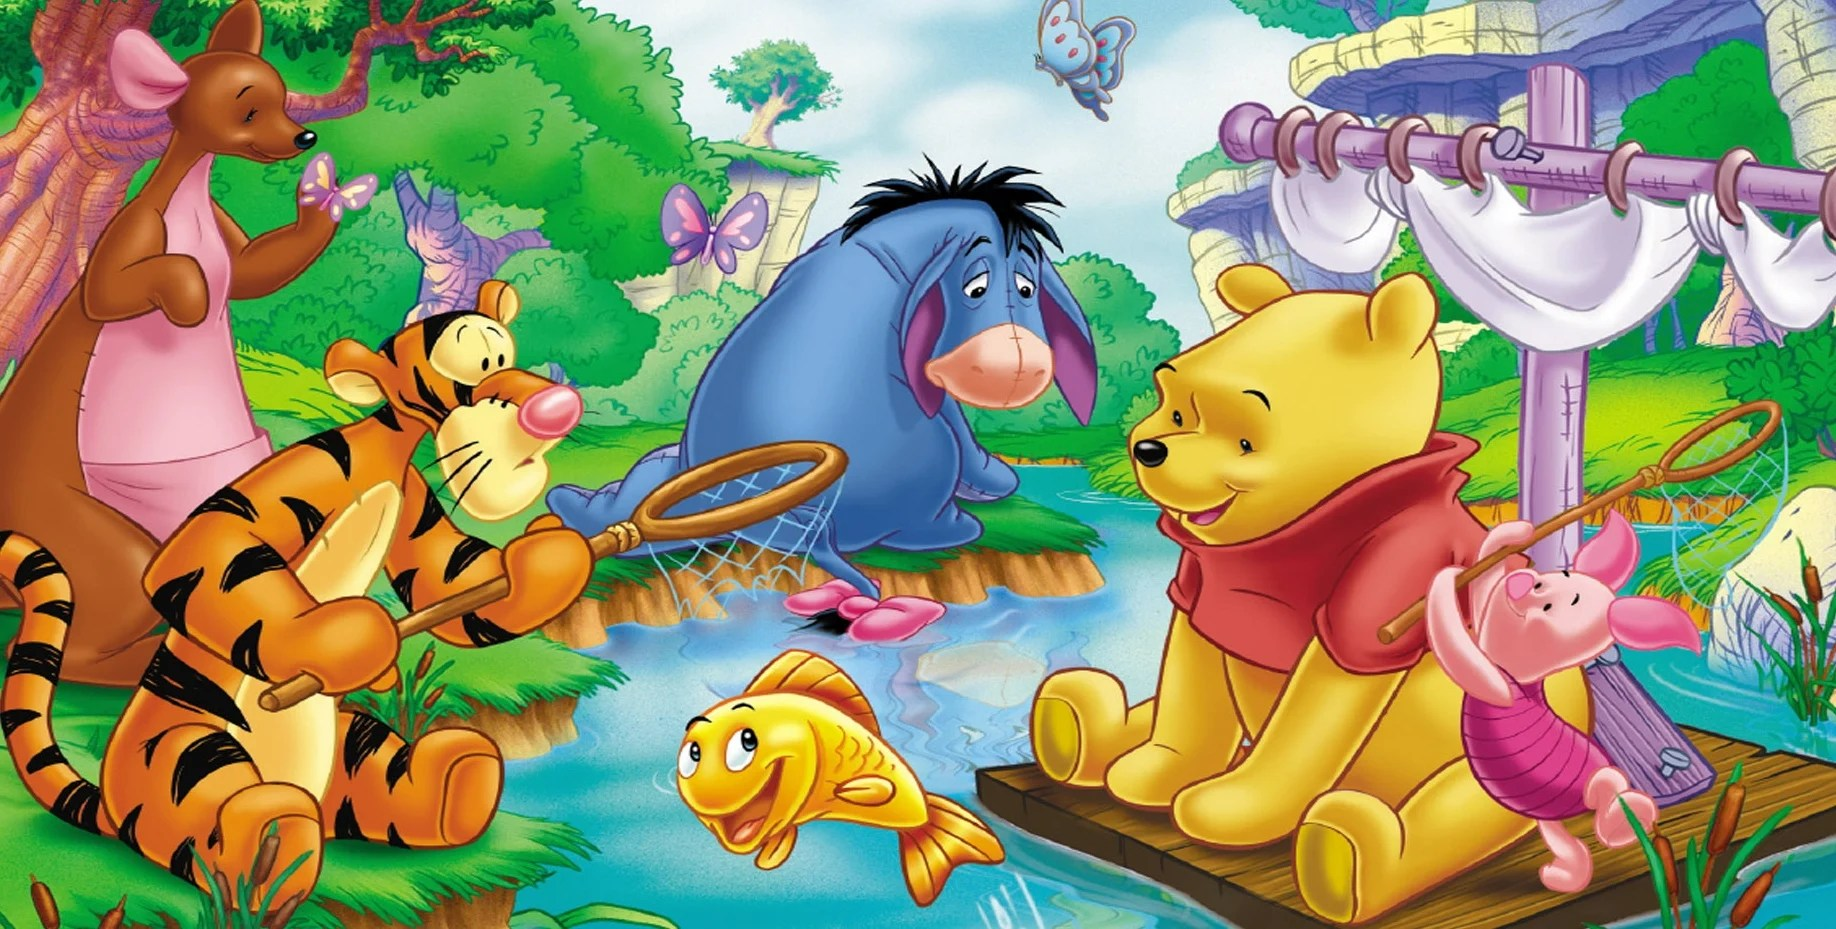 Winnie The Pooh Live Action Movie Reportedly In The Works At Disney